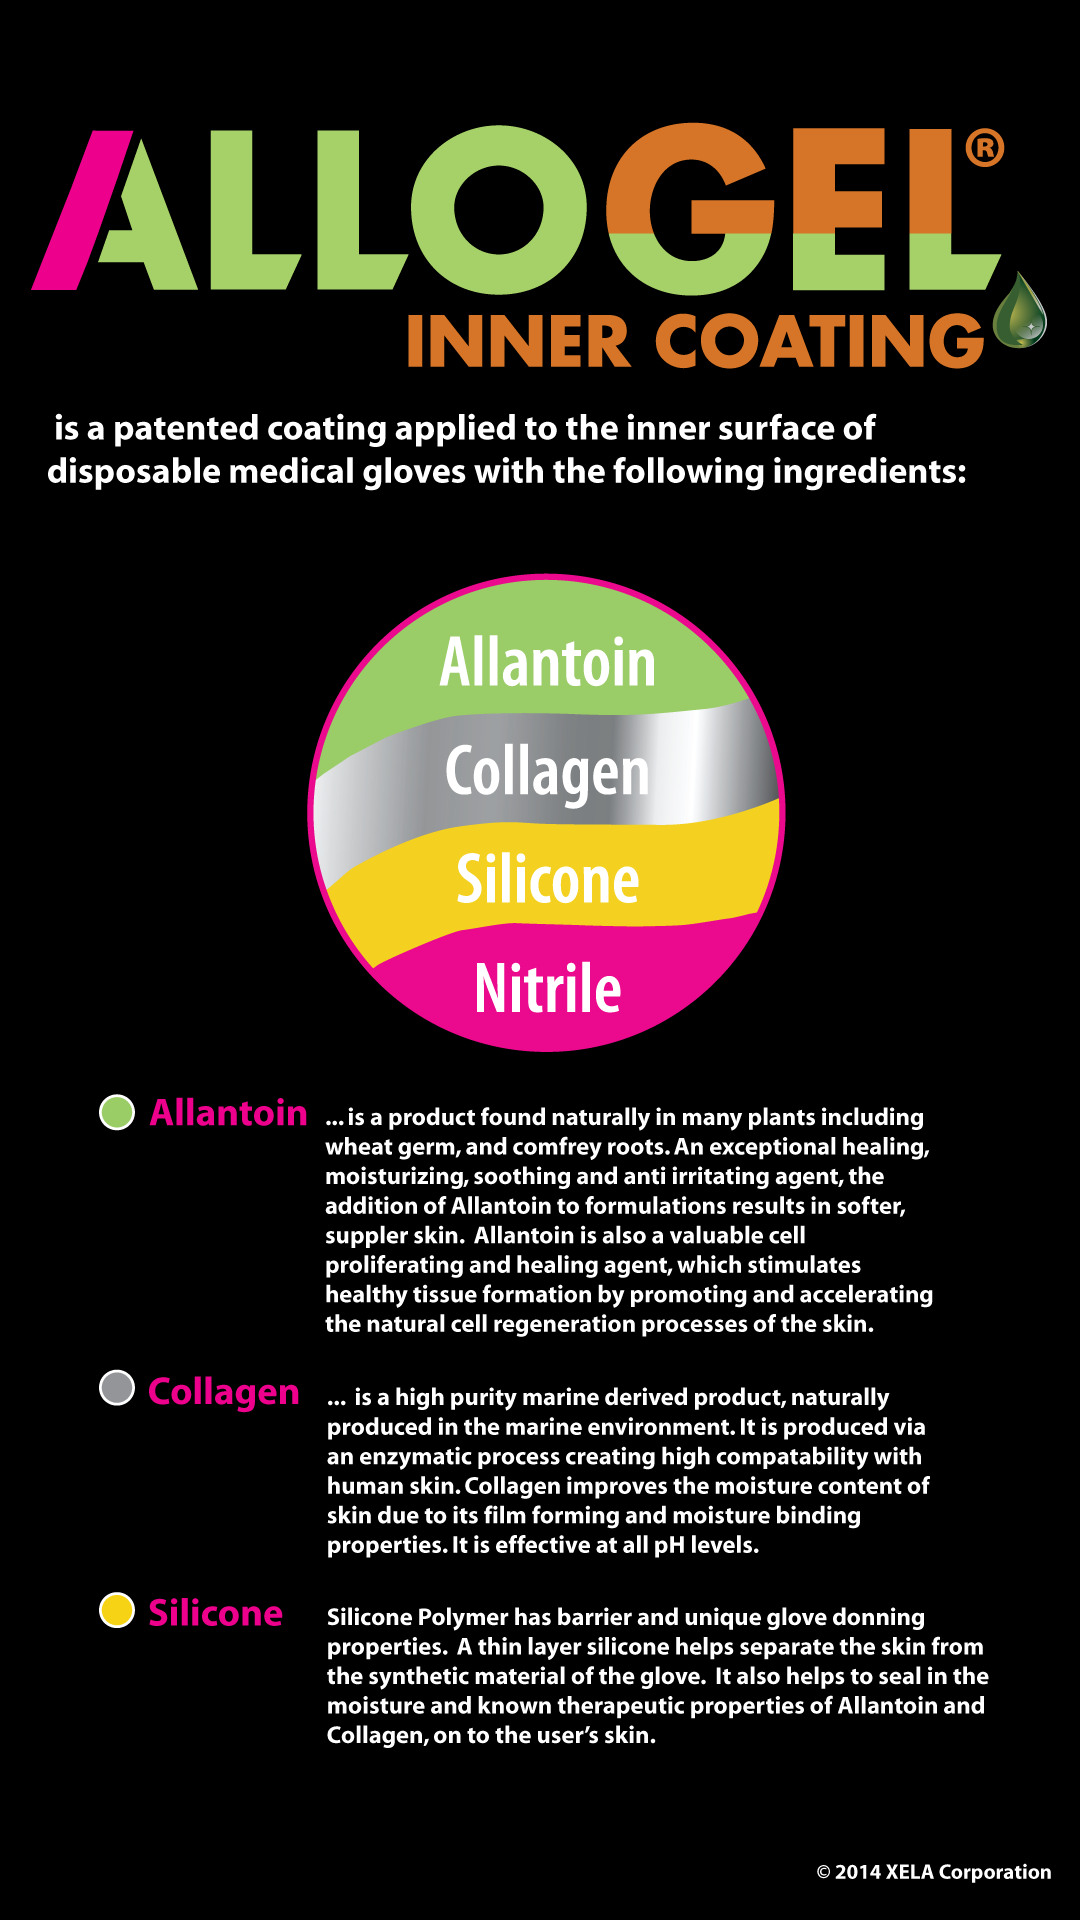 AlloGel--All-Col-Silicone-1.png